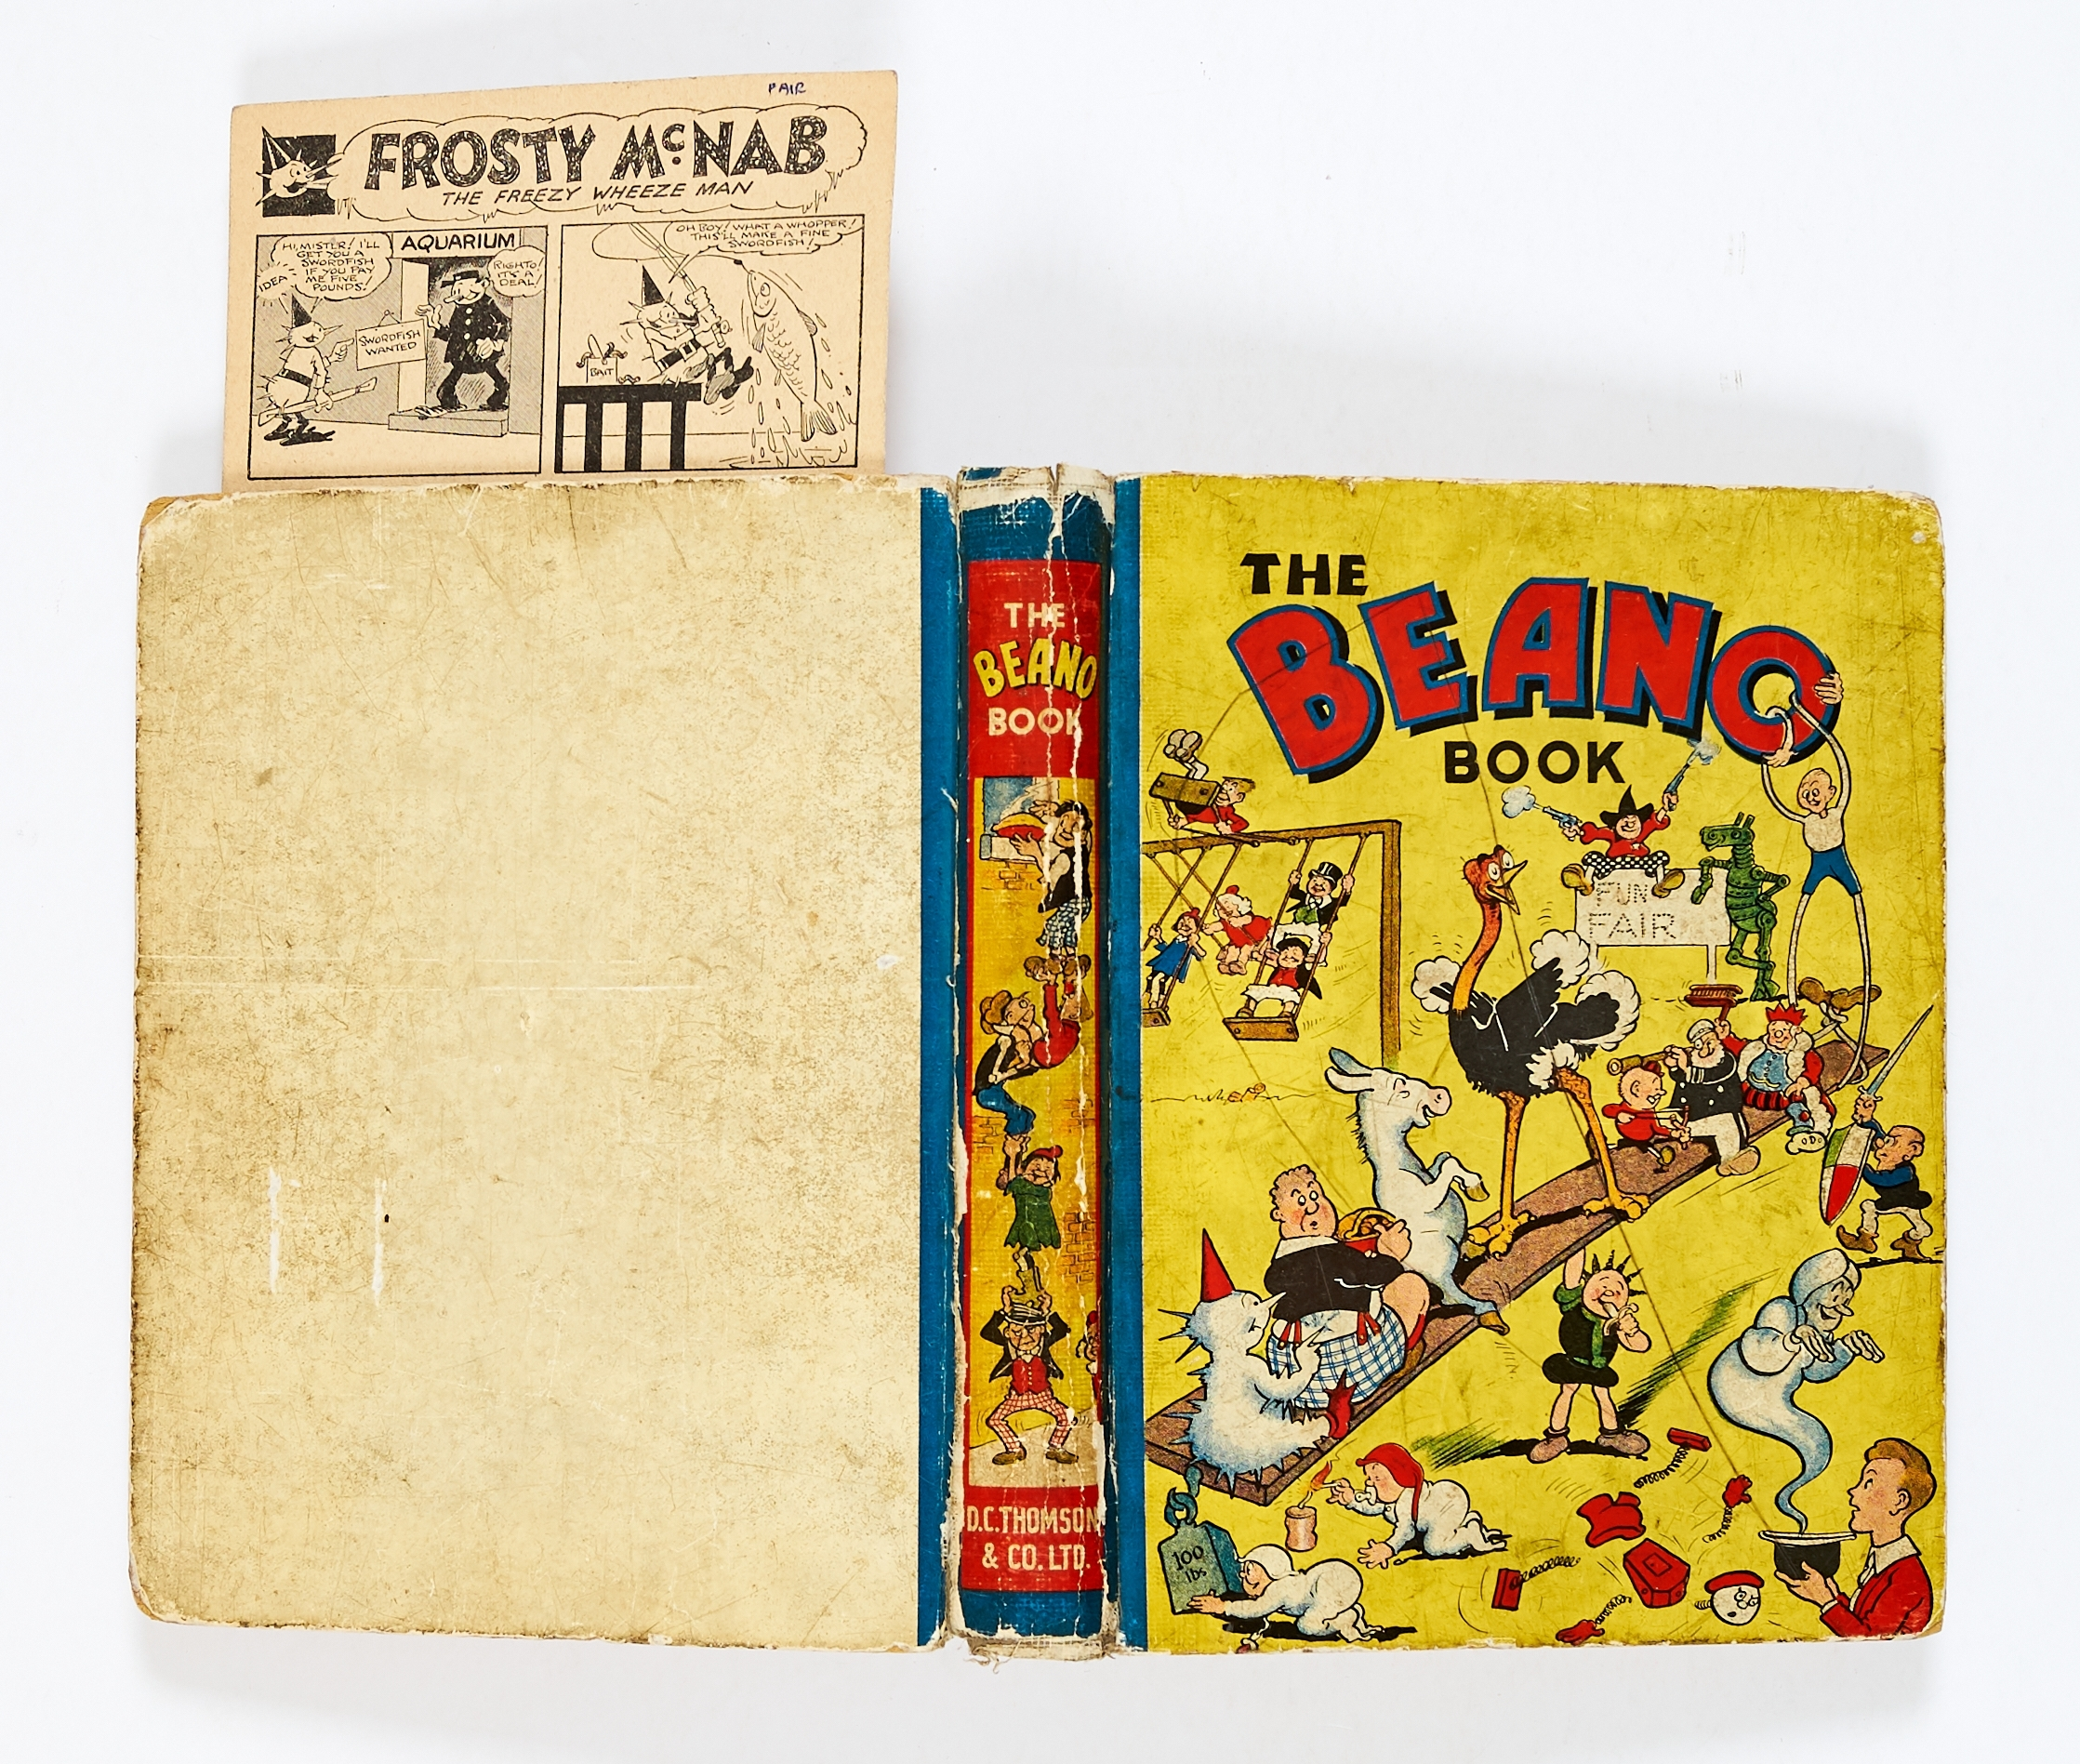 Lot 24 - Beano Book No 1 (1940). Worn boards, hinges and near complete spine. Cream/light tan pages with